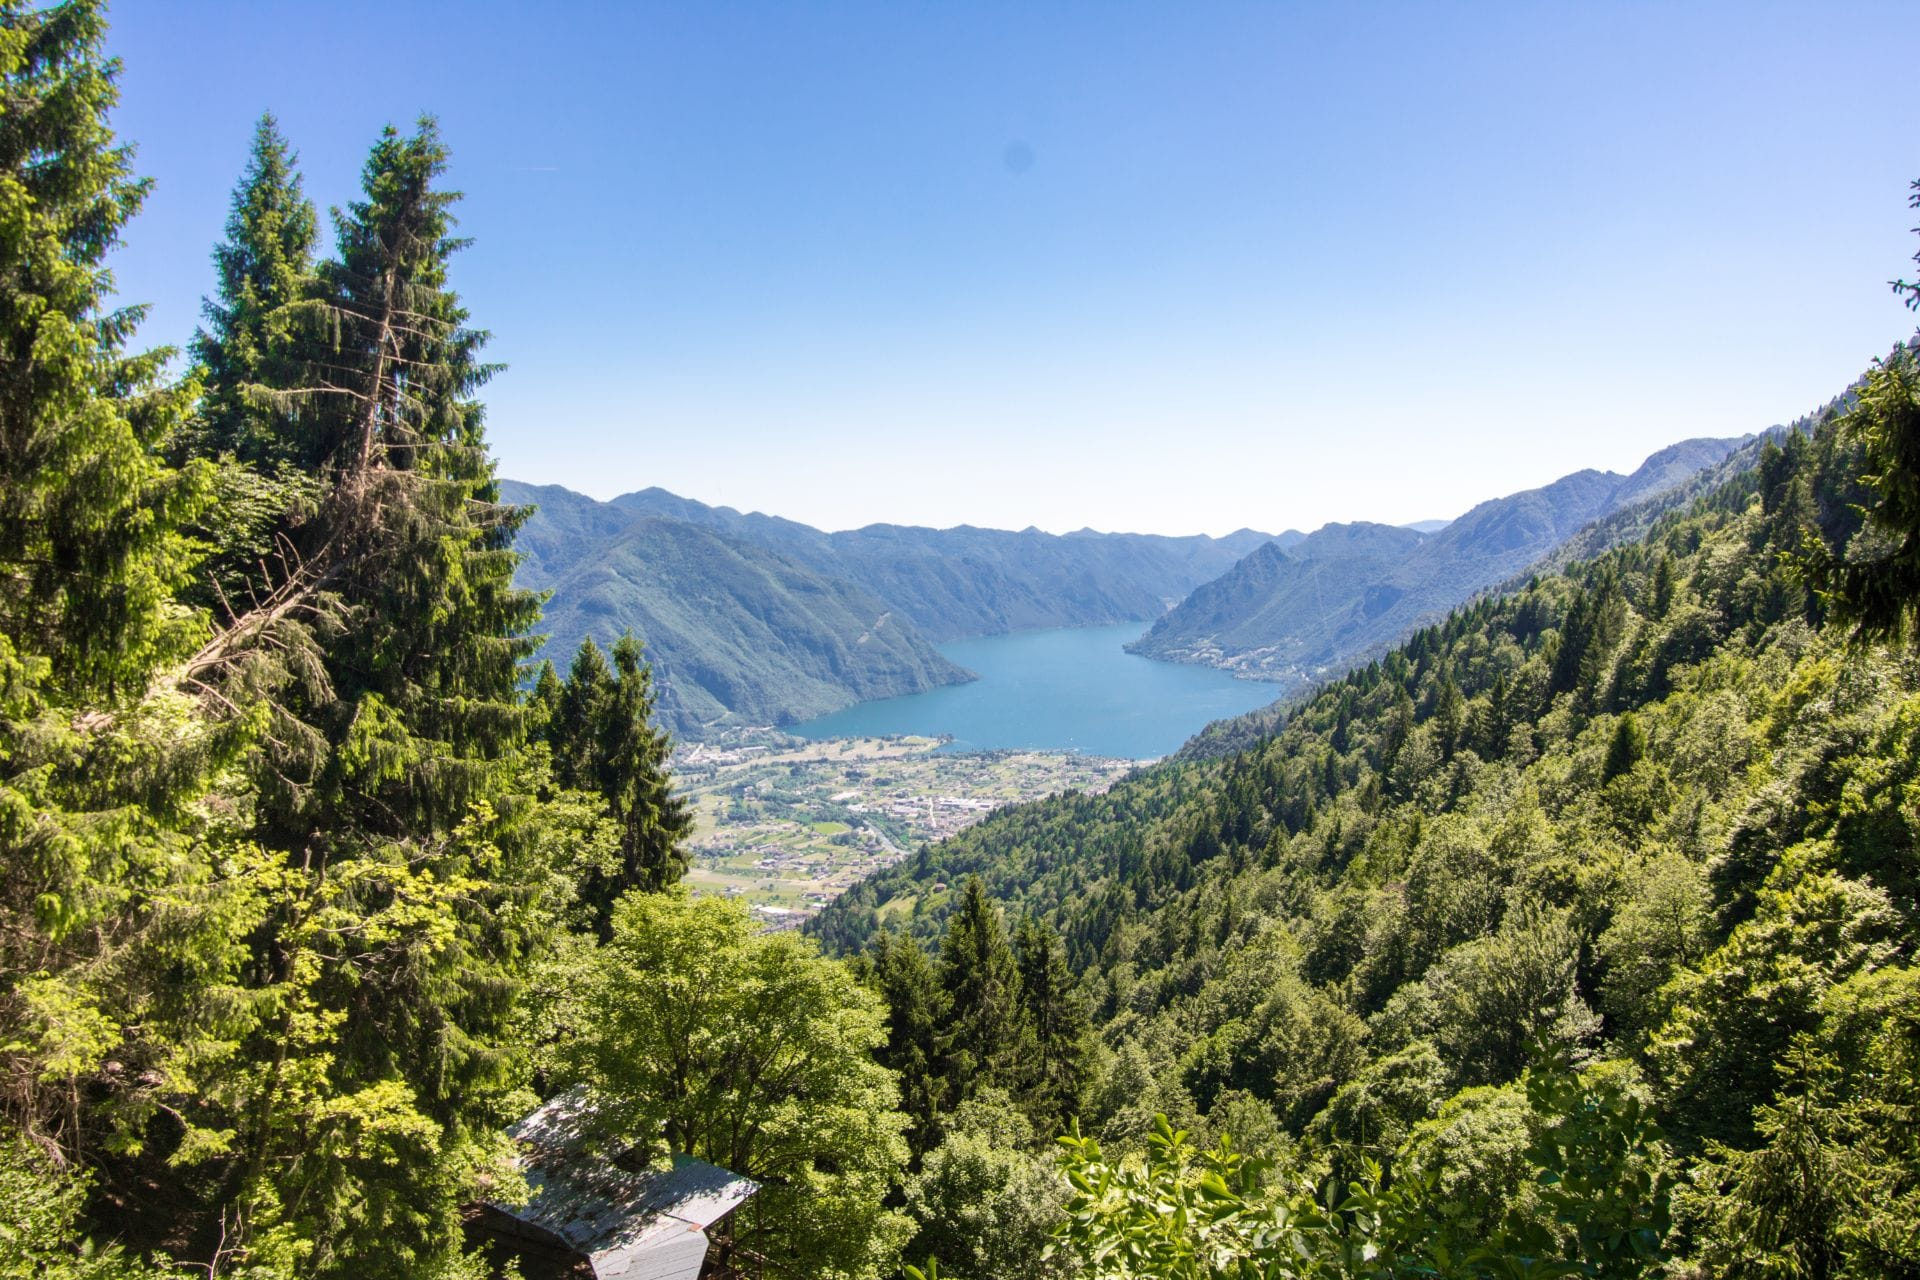 view-from-darzo-mine-in-the-mountains-across-a-valley-and-lake-valle-del-chiese-trentino-italy